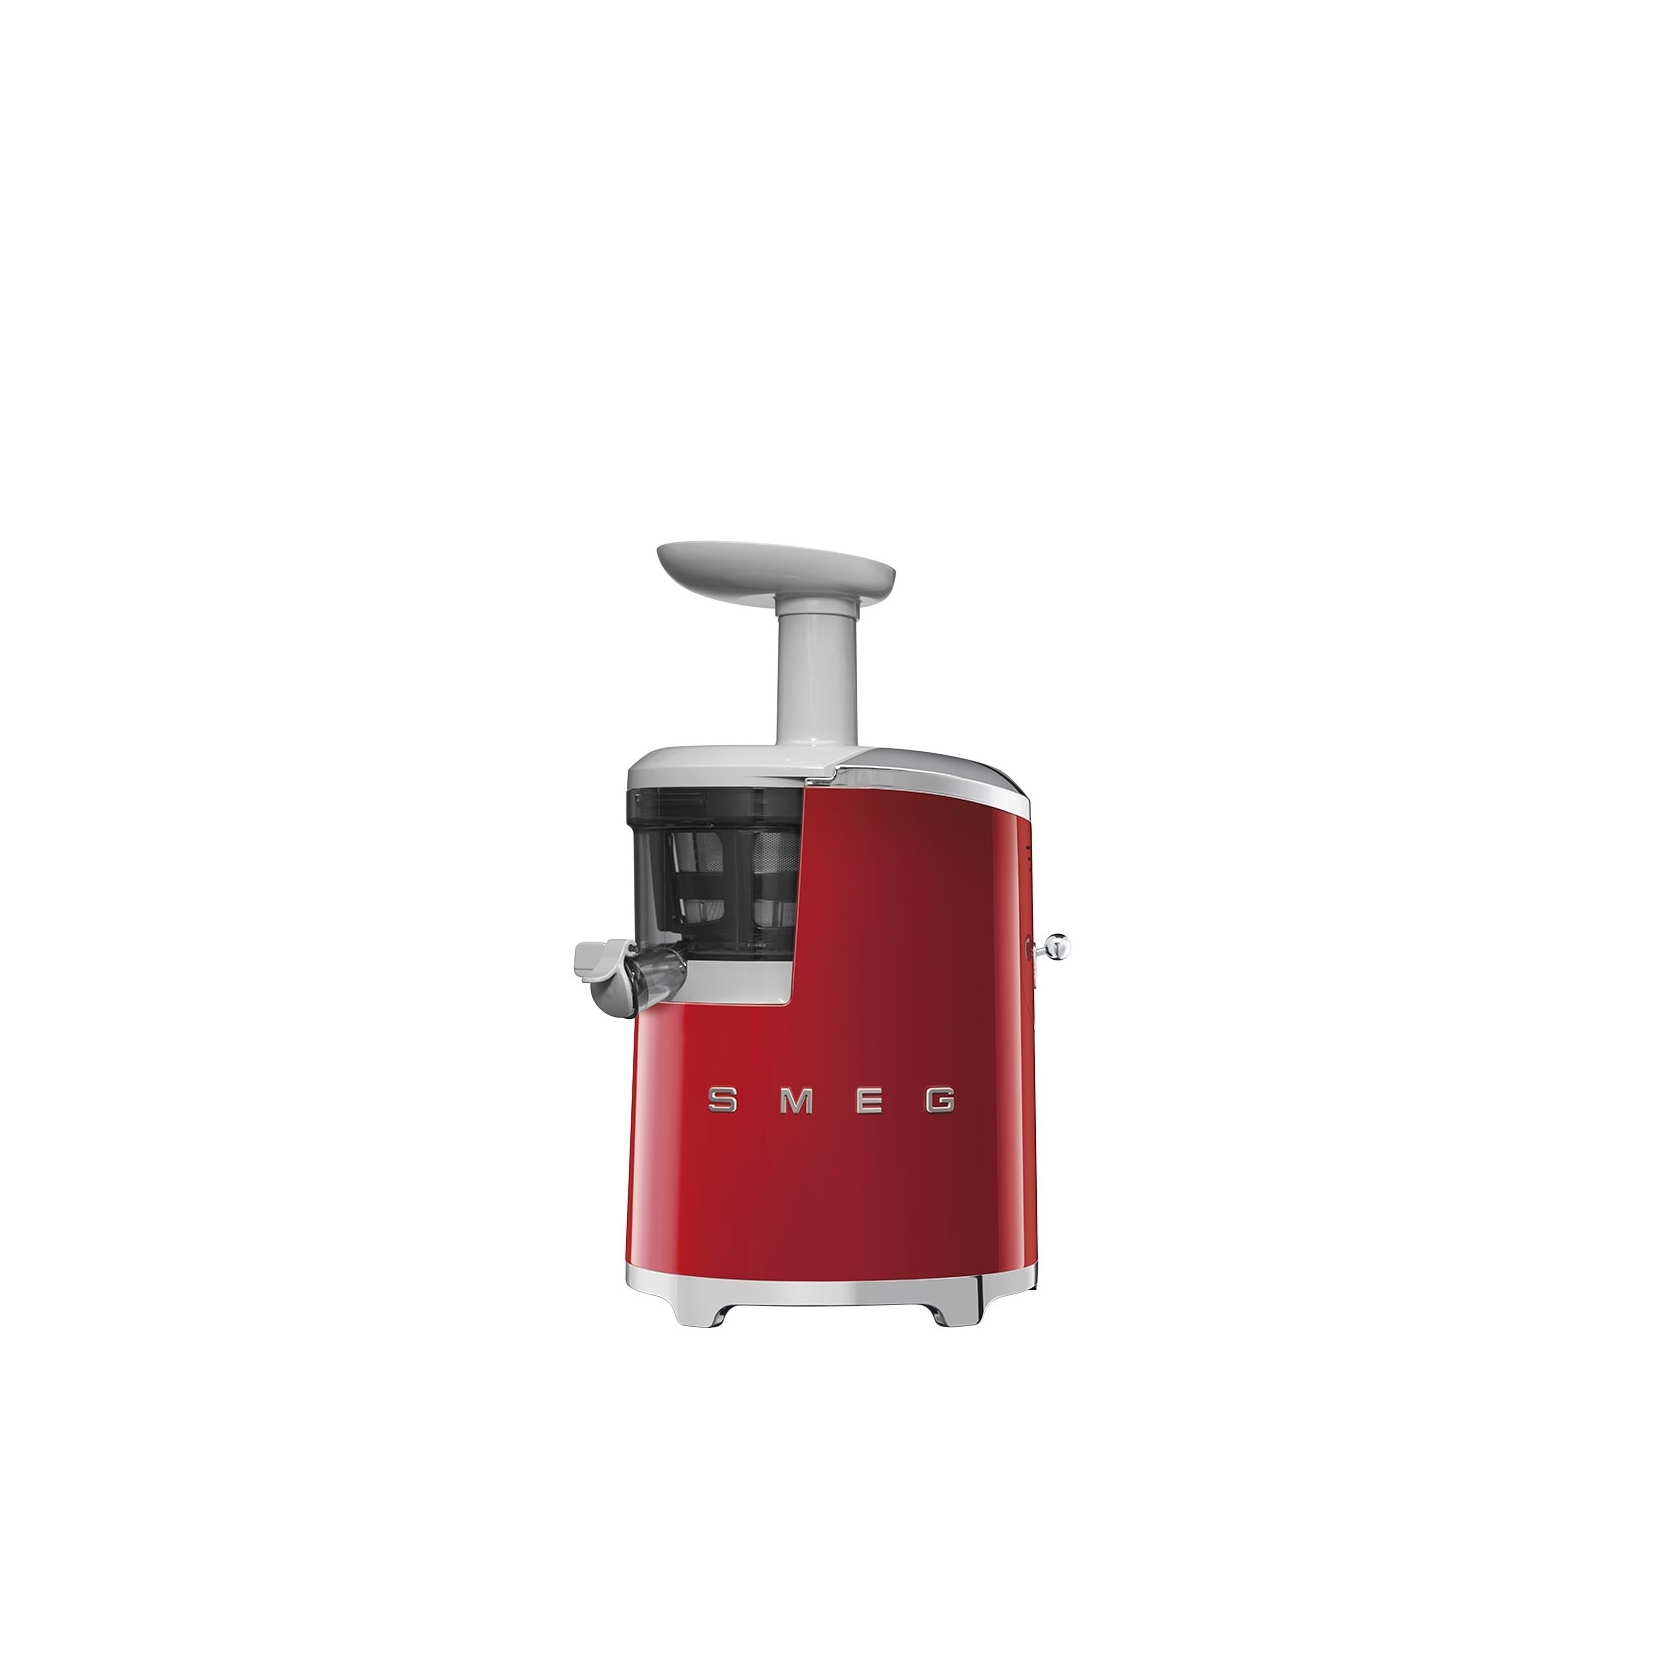 Smeg Slow Juicer Colours : SMEG SLOW JUICER RETRO STYLE AESTHETIC - TattaHome